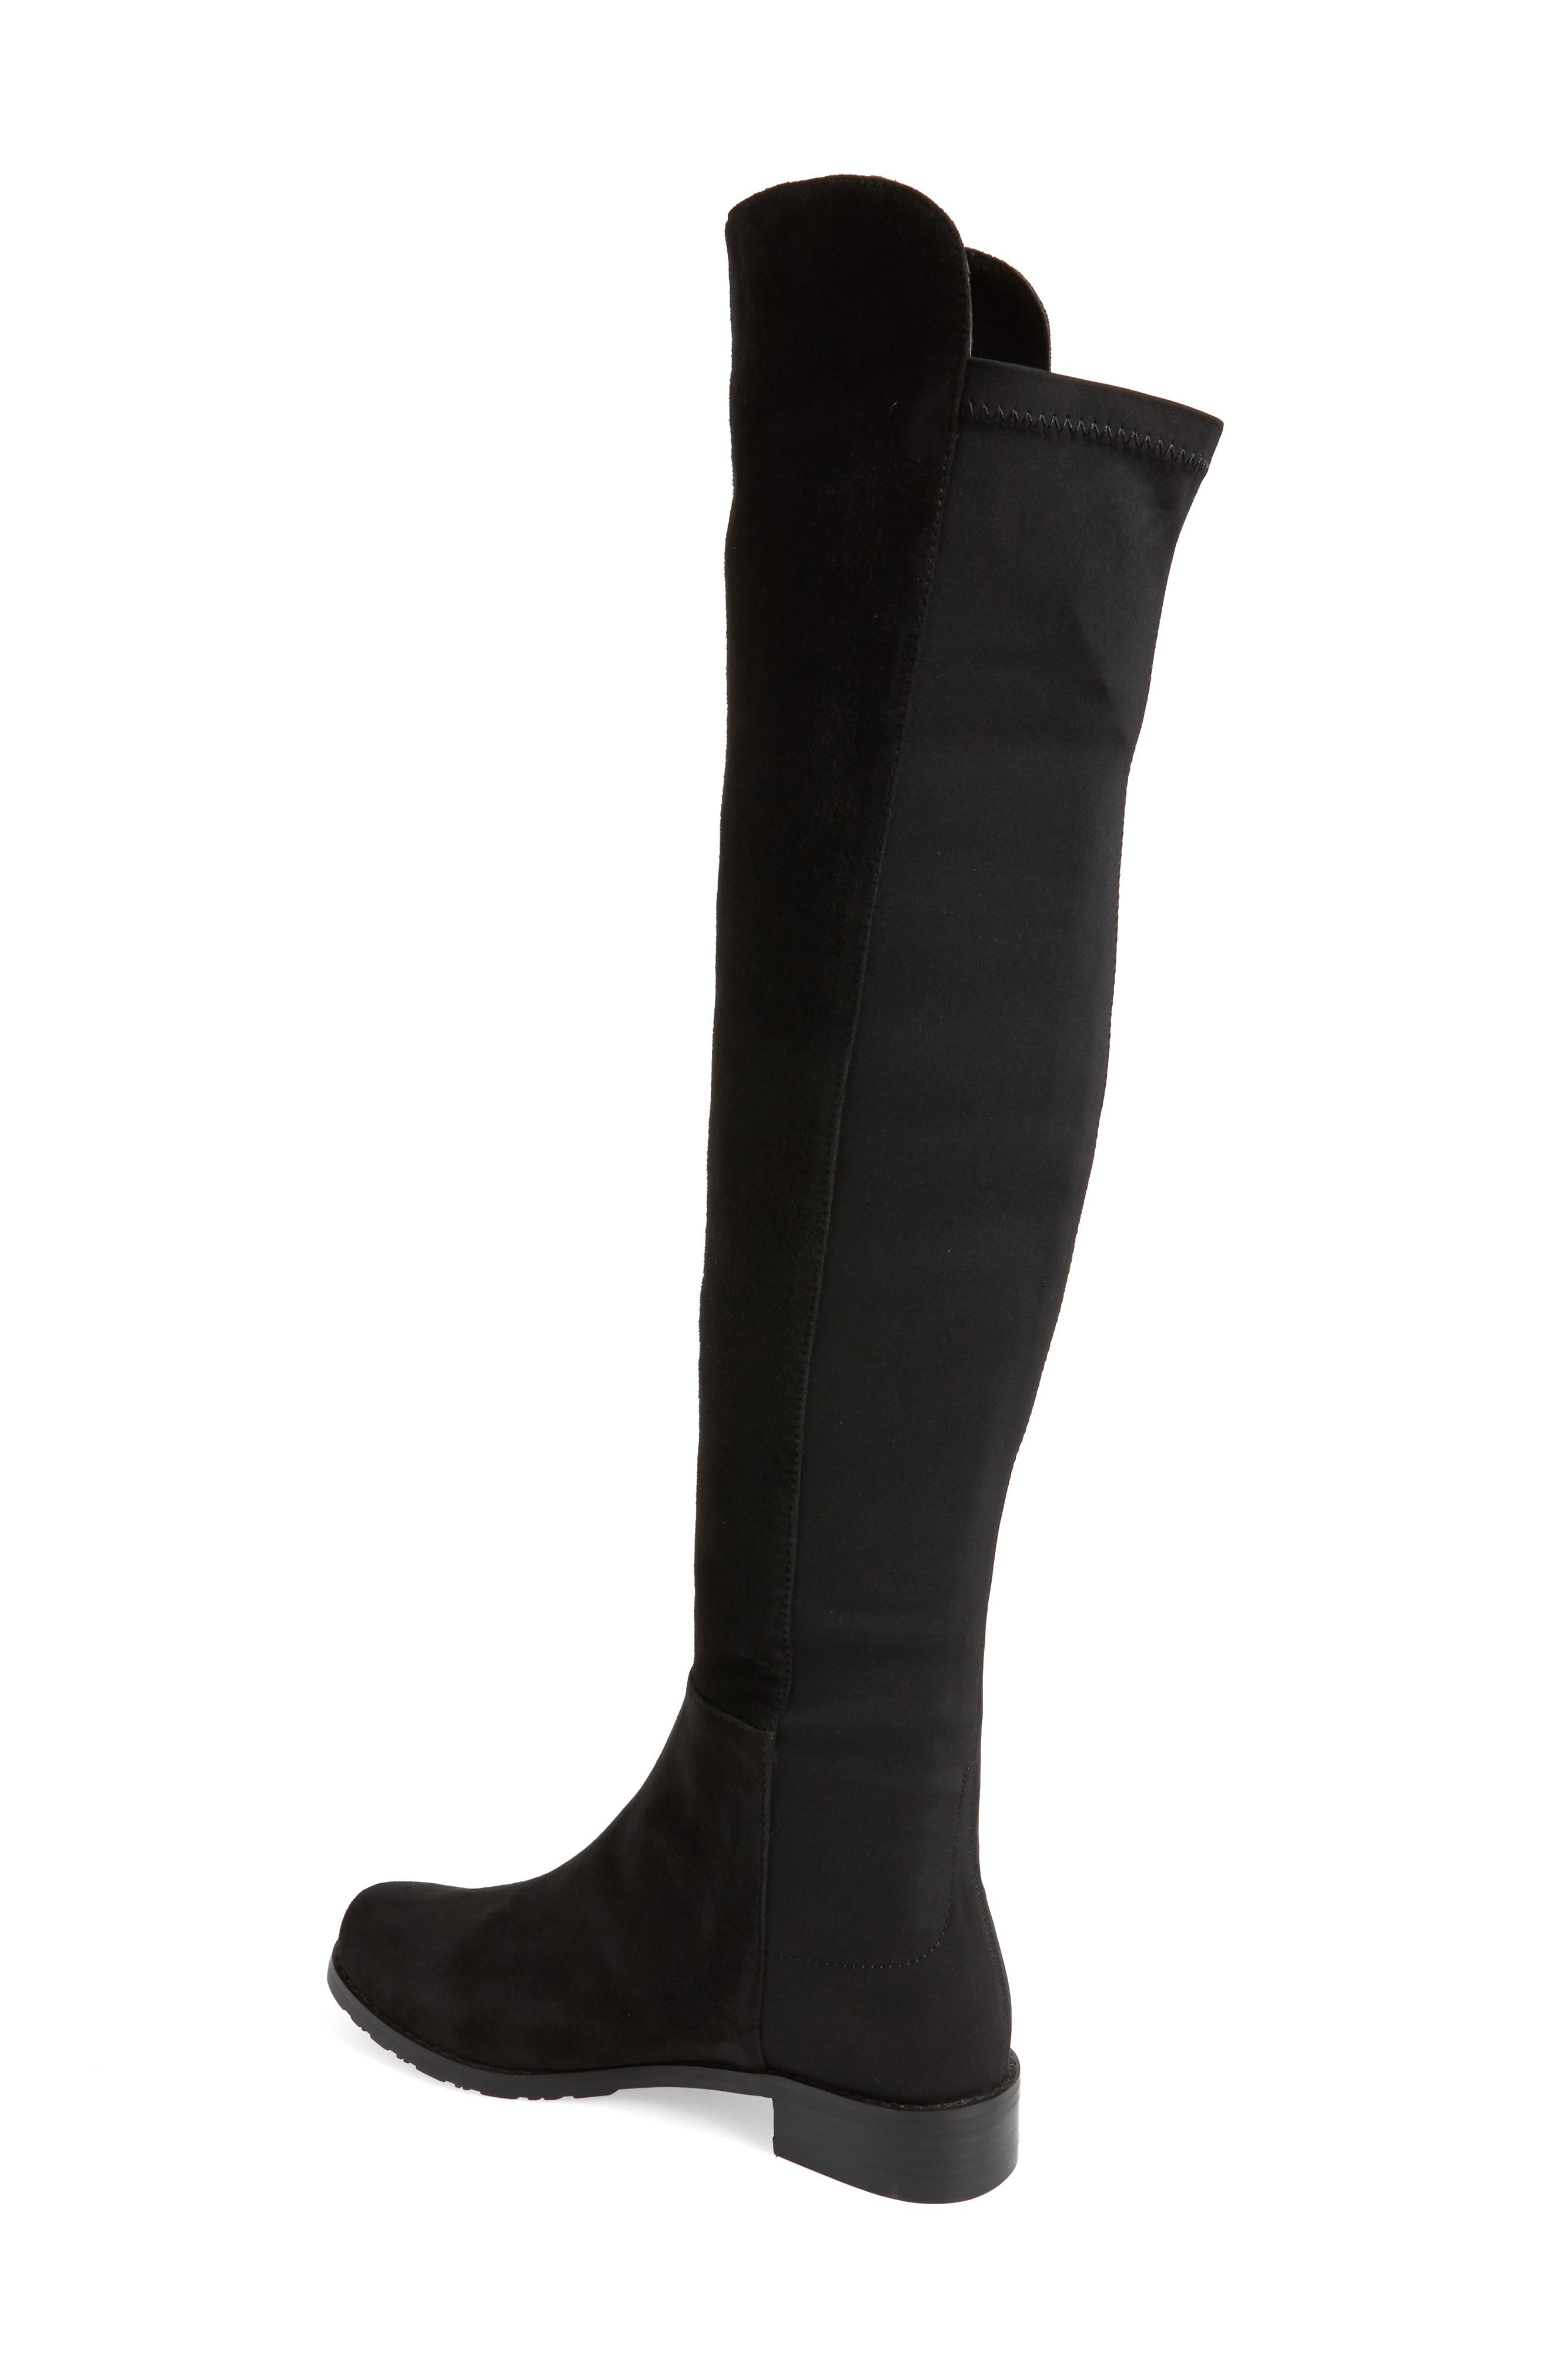 Panache Tall Boot,                             Alternate thumbnail 2, color,                             Black Suede